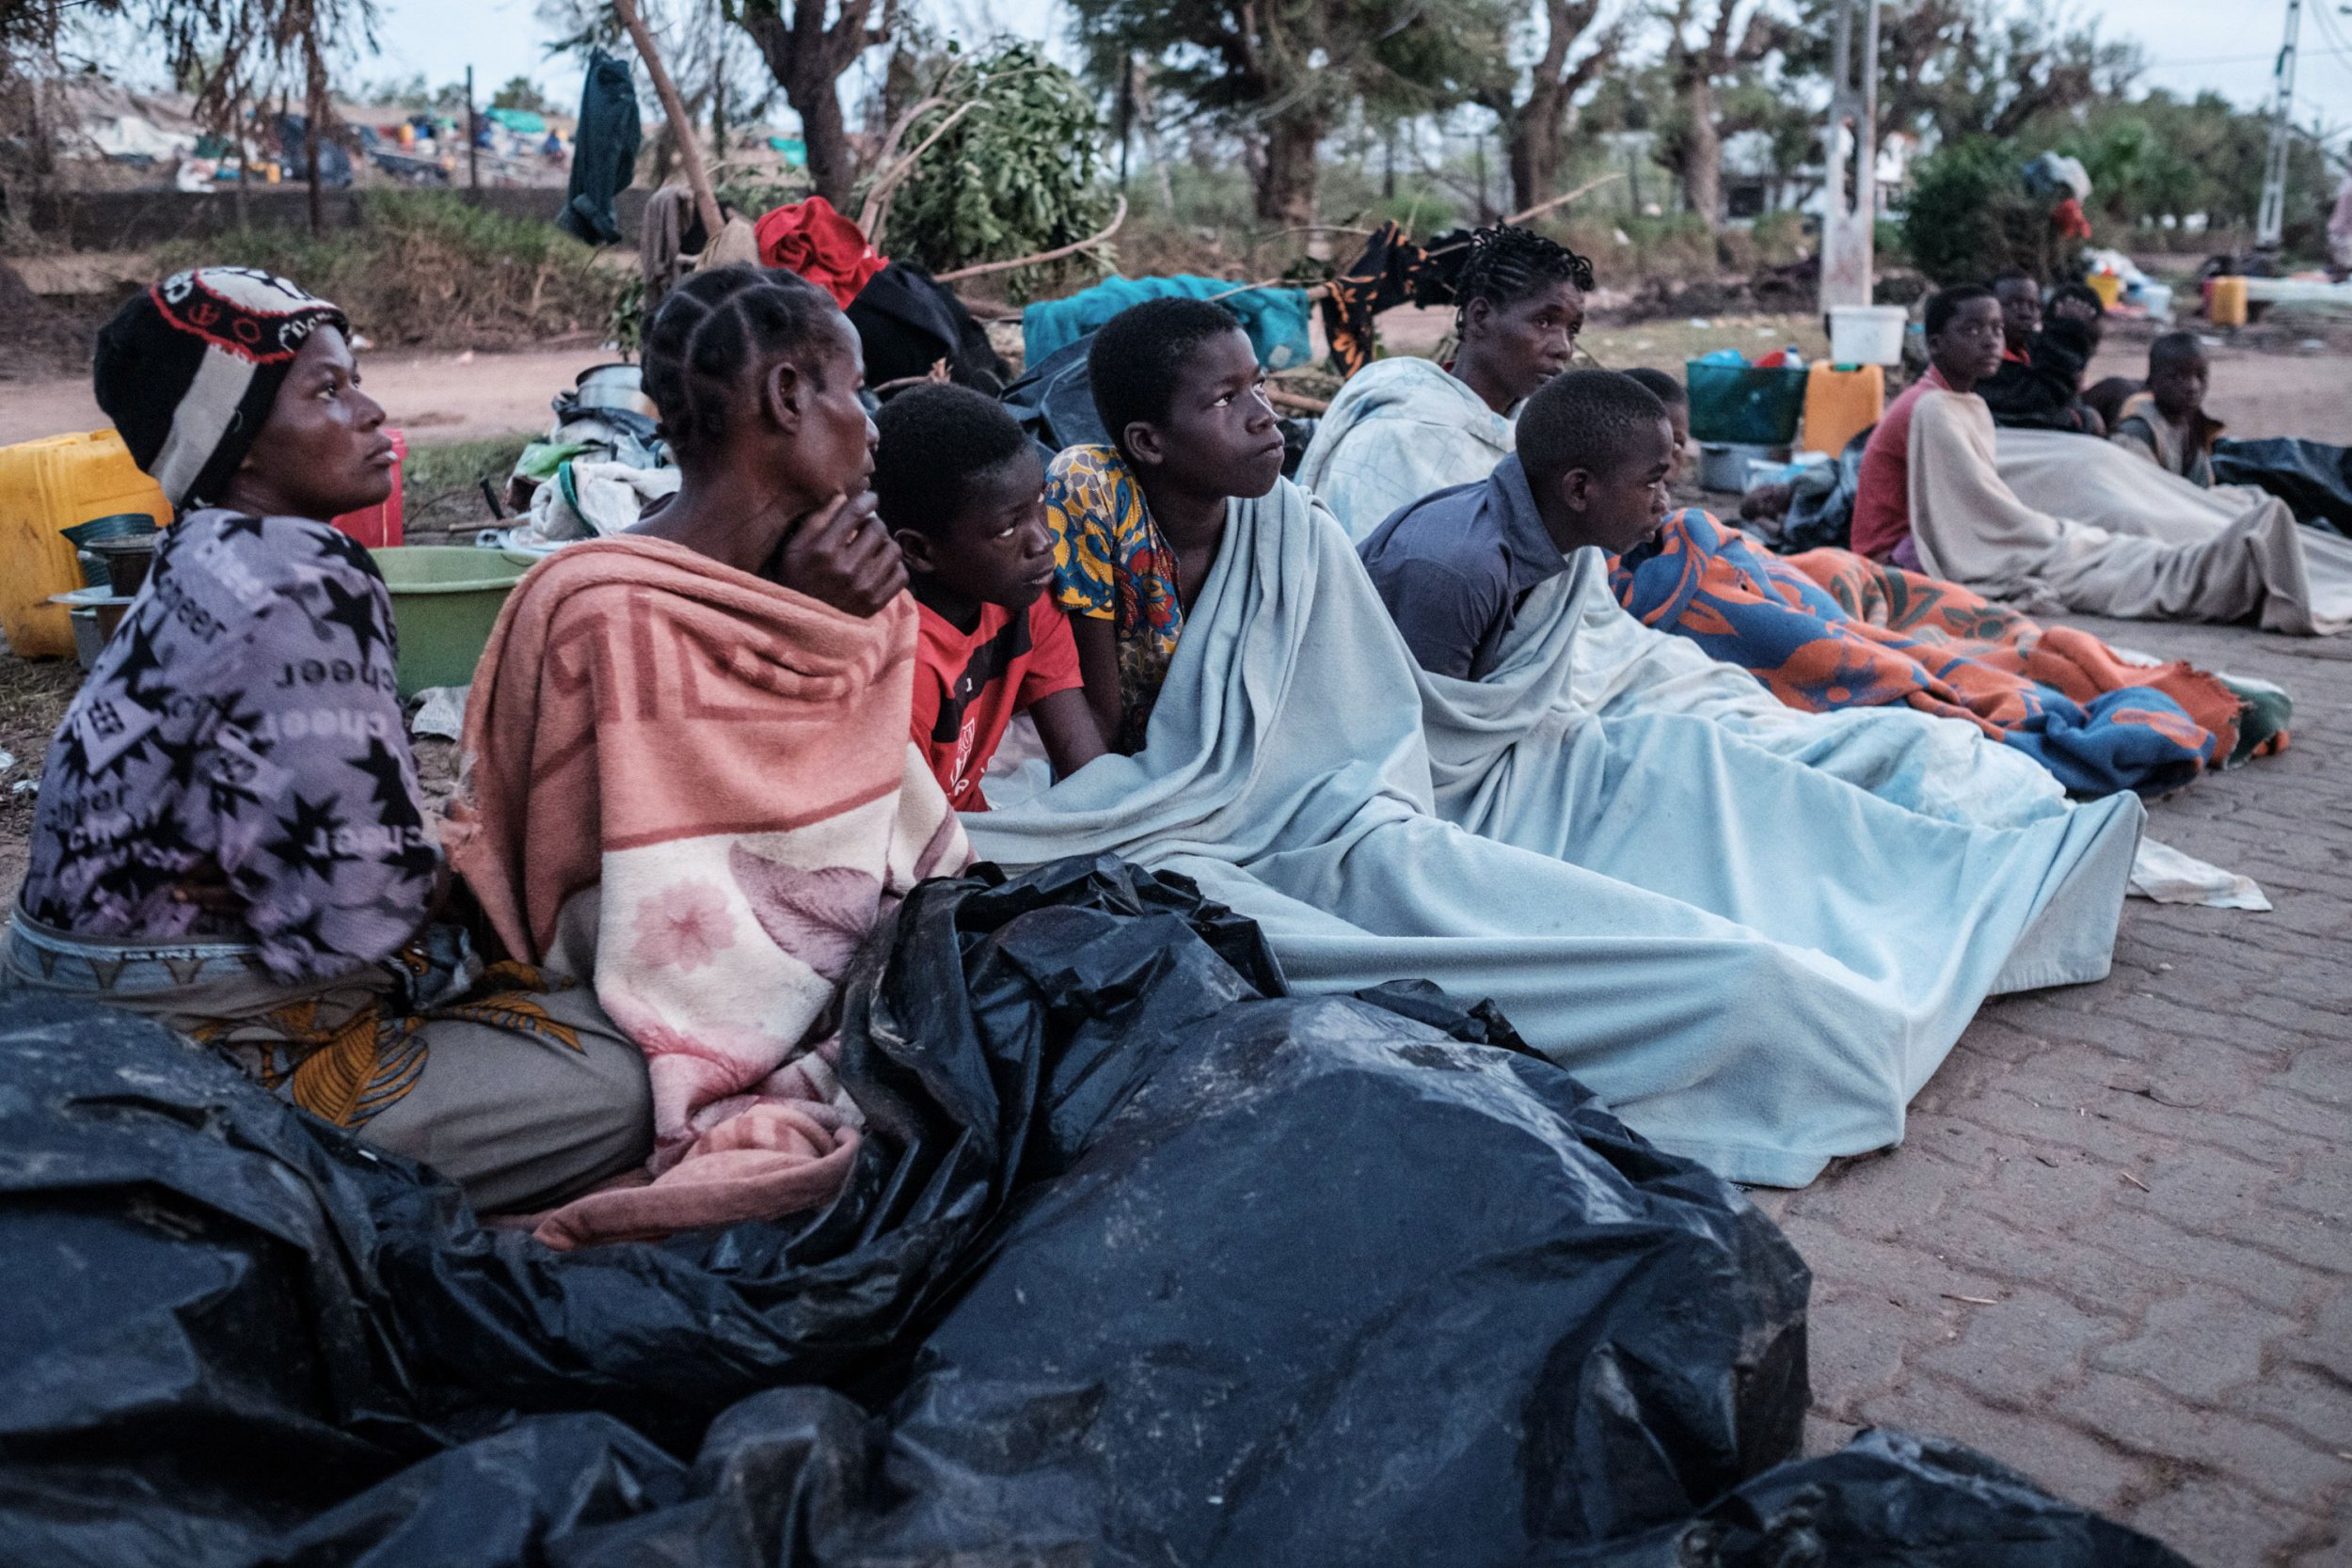 People who lost their home by the cyclone Idai wake up in the morning as they stay in shelter on a street in Buzi, Mozambique, on March 23, 2019. - The death toll in Mozambique on March 23, 2019 climbed to 417 after a cyclone pummelled swathes of the southern African country, flooding thousands of square kilometres, as the UN stepped up calls for more help for survivors. Cyclone Idai smashed into the coast of central Mozambique last week, unleashing hurricane-force winds and rains that flooded the hinterland and drenched eastern Zimbabwe leaving a trail of destruction. (Photo by Yasuyoshi CHIBA / AFP)YASUYOSHI CHIBA/AFP/Getty Images